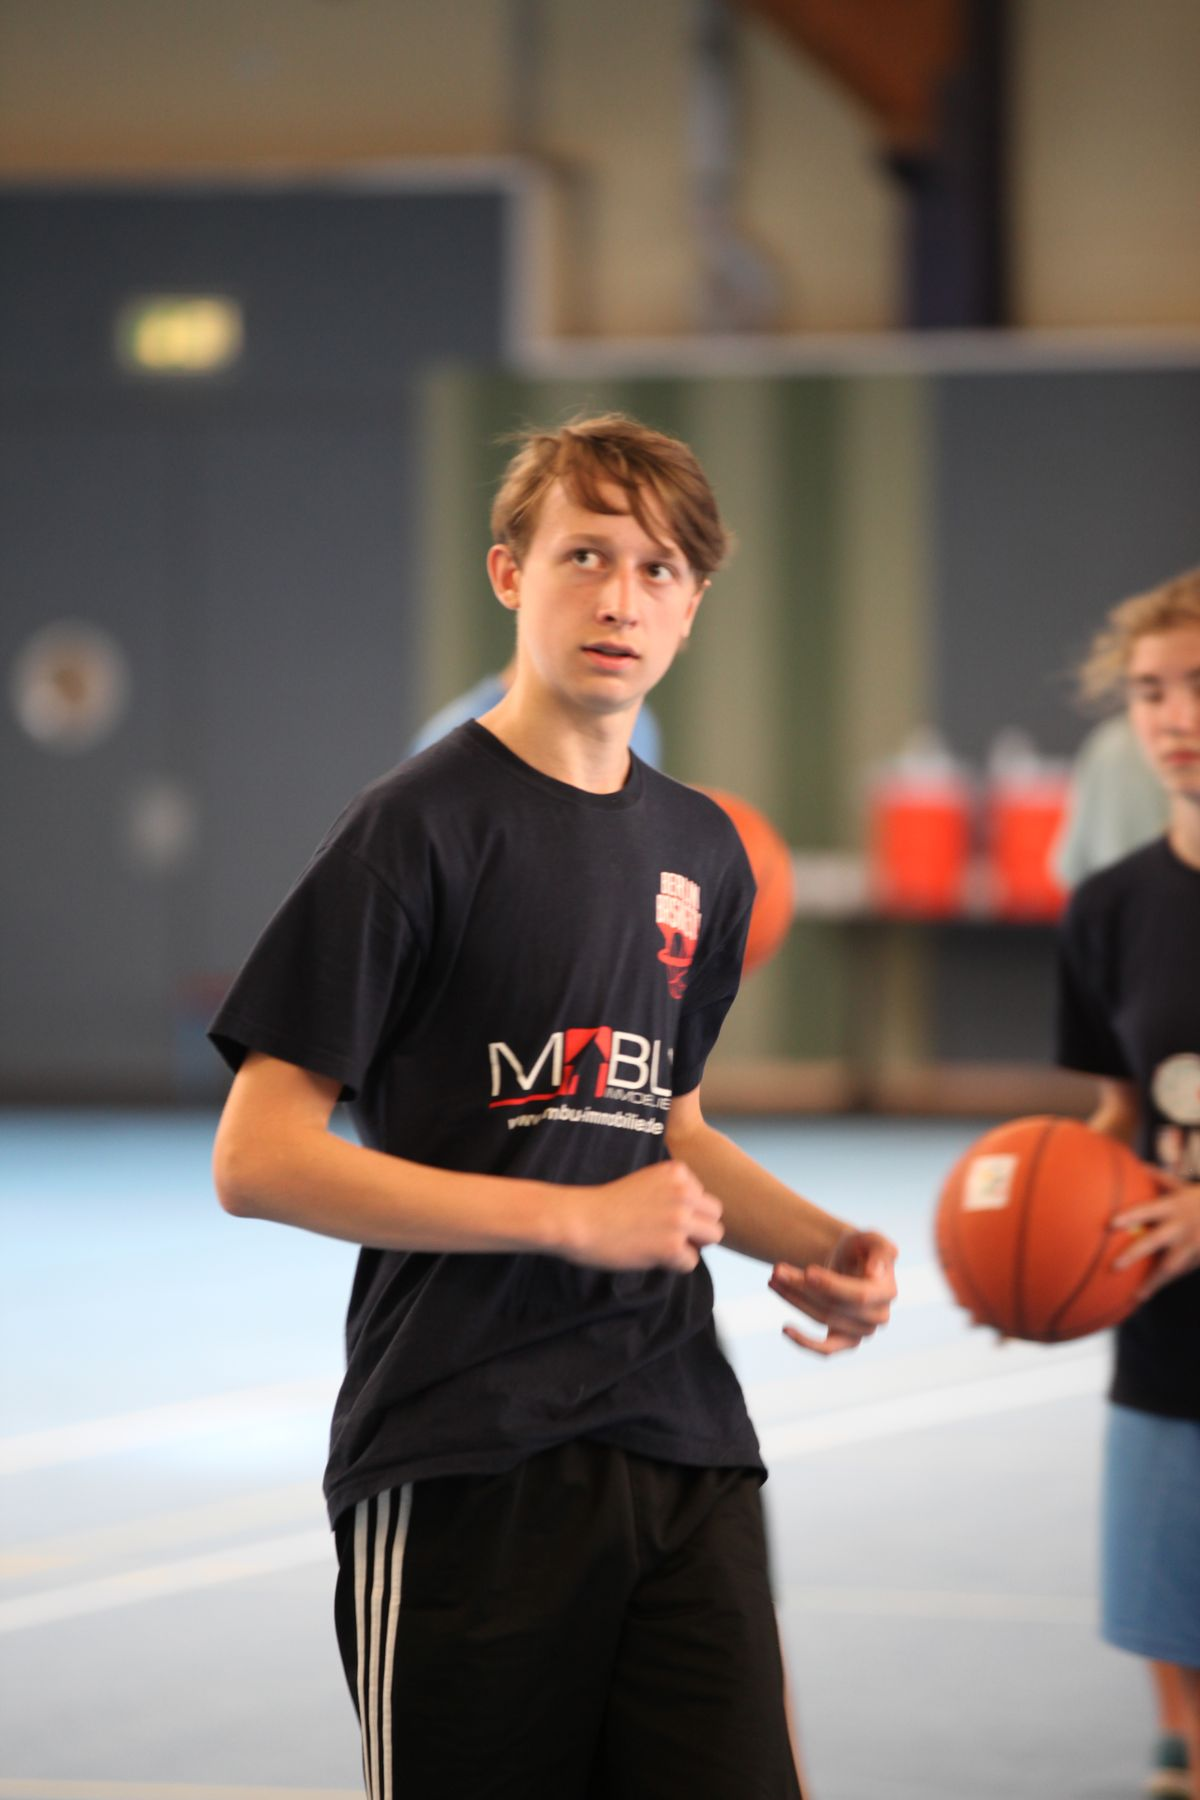 Sommer_BBall-Camp_2014_Tag 3 (10)